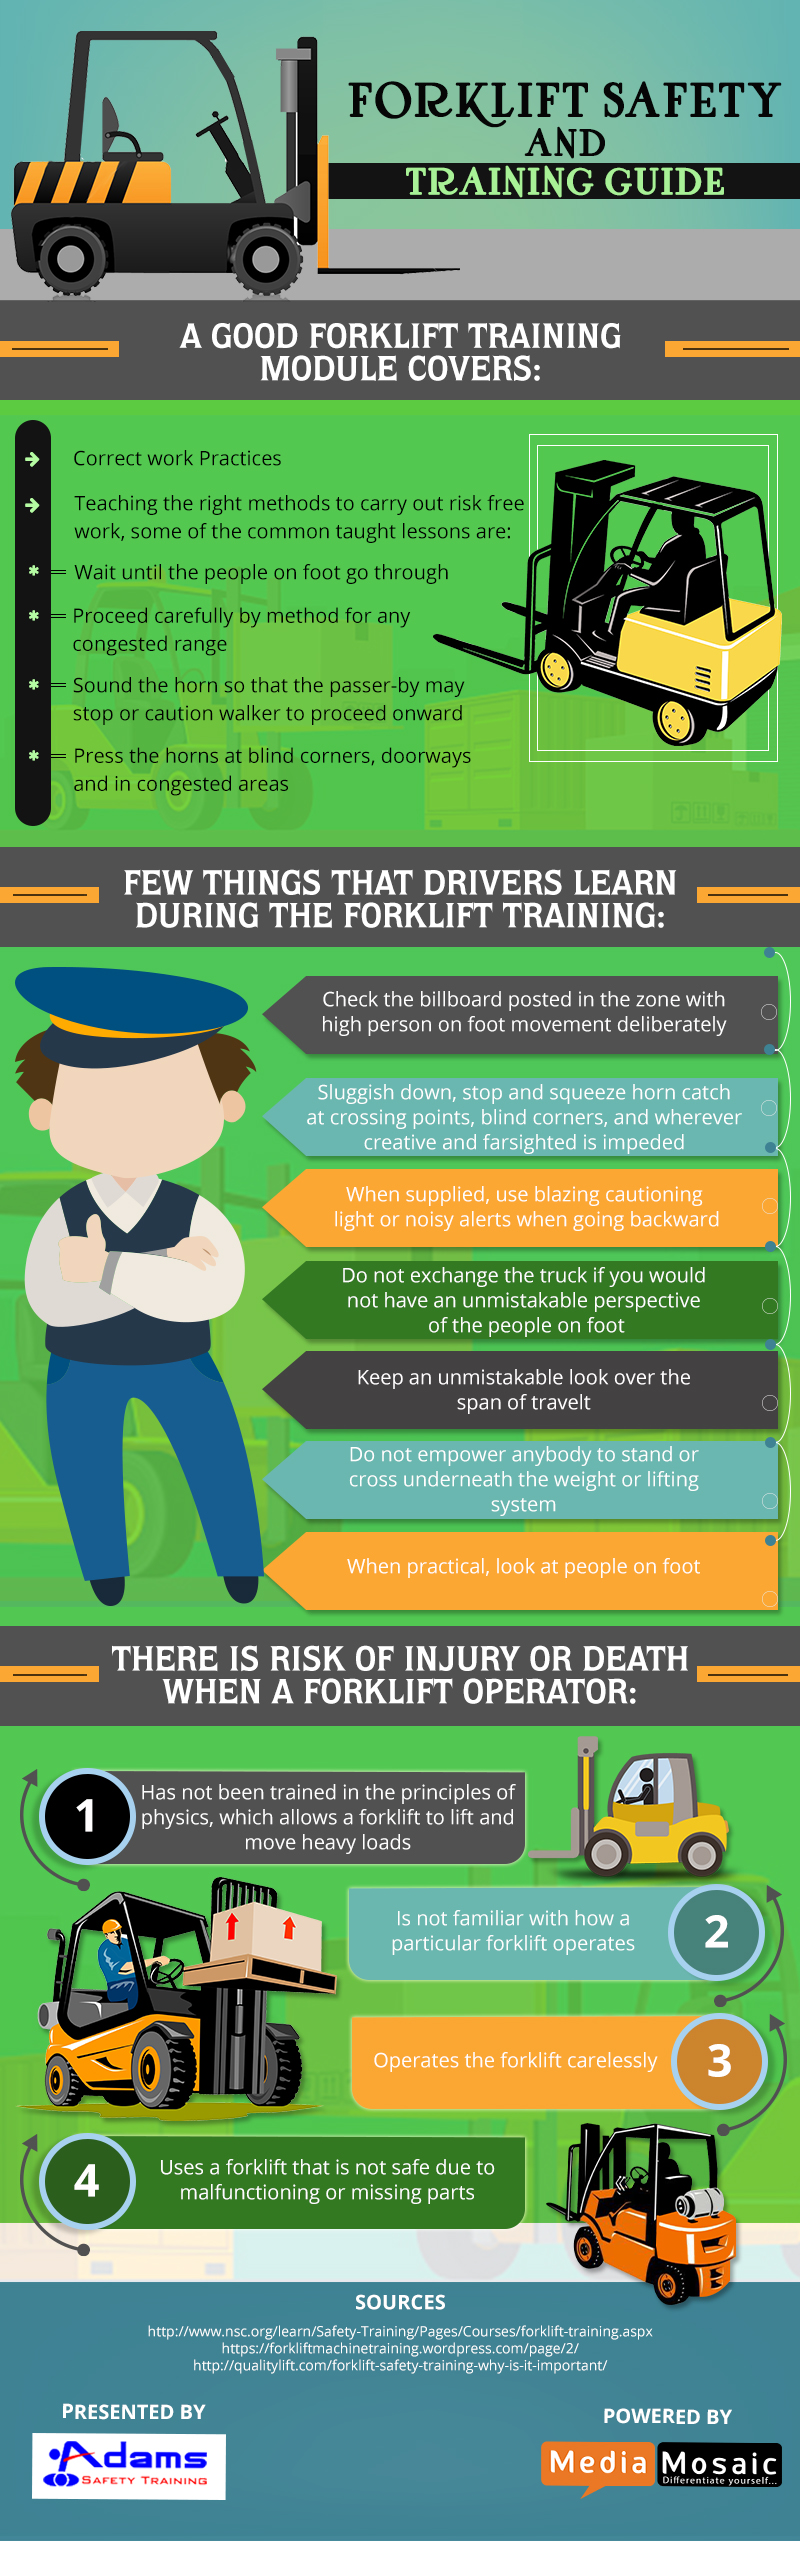 forklift safety and training